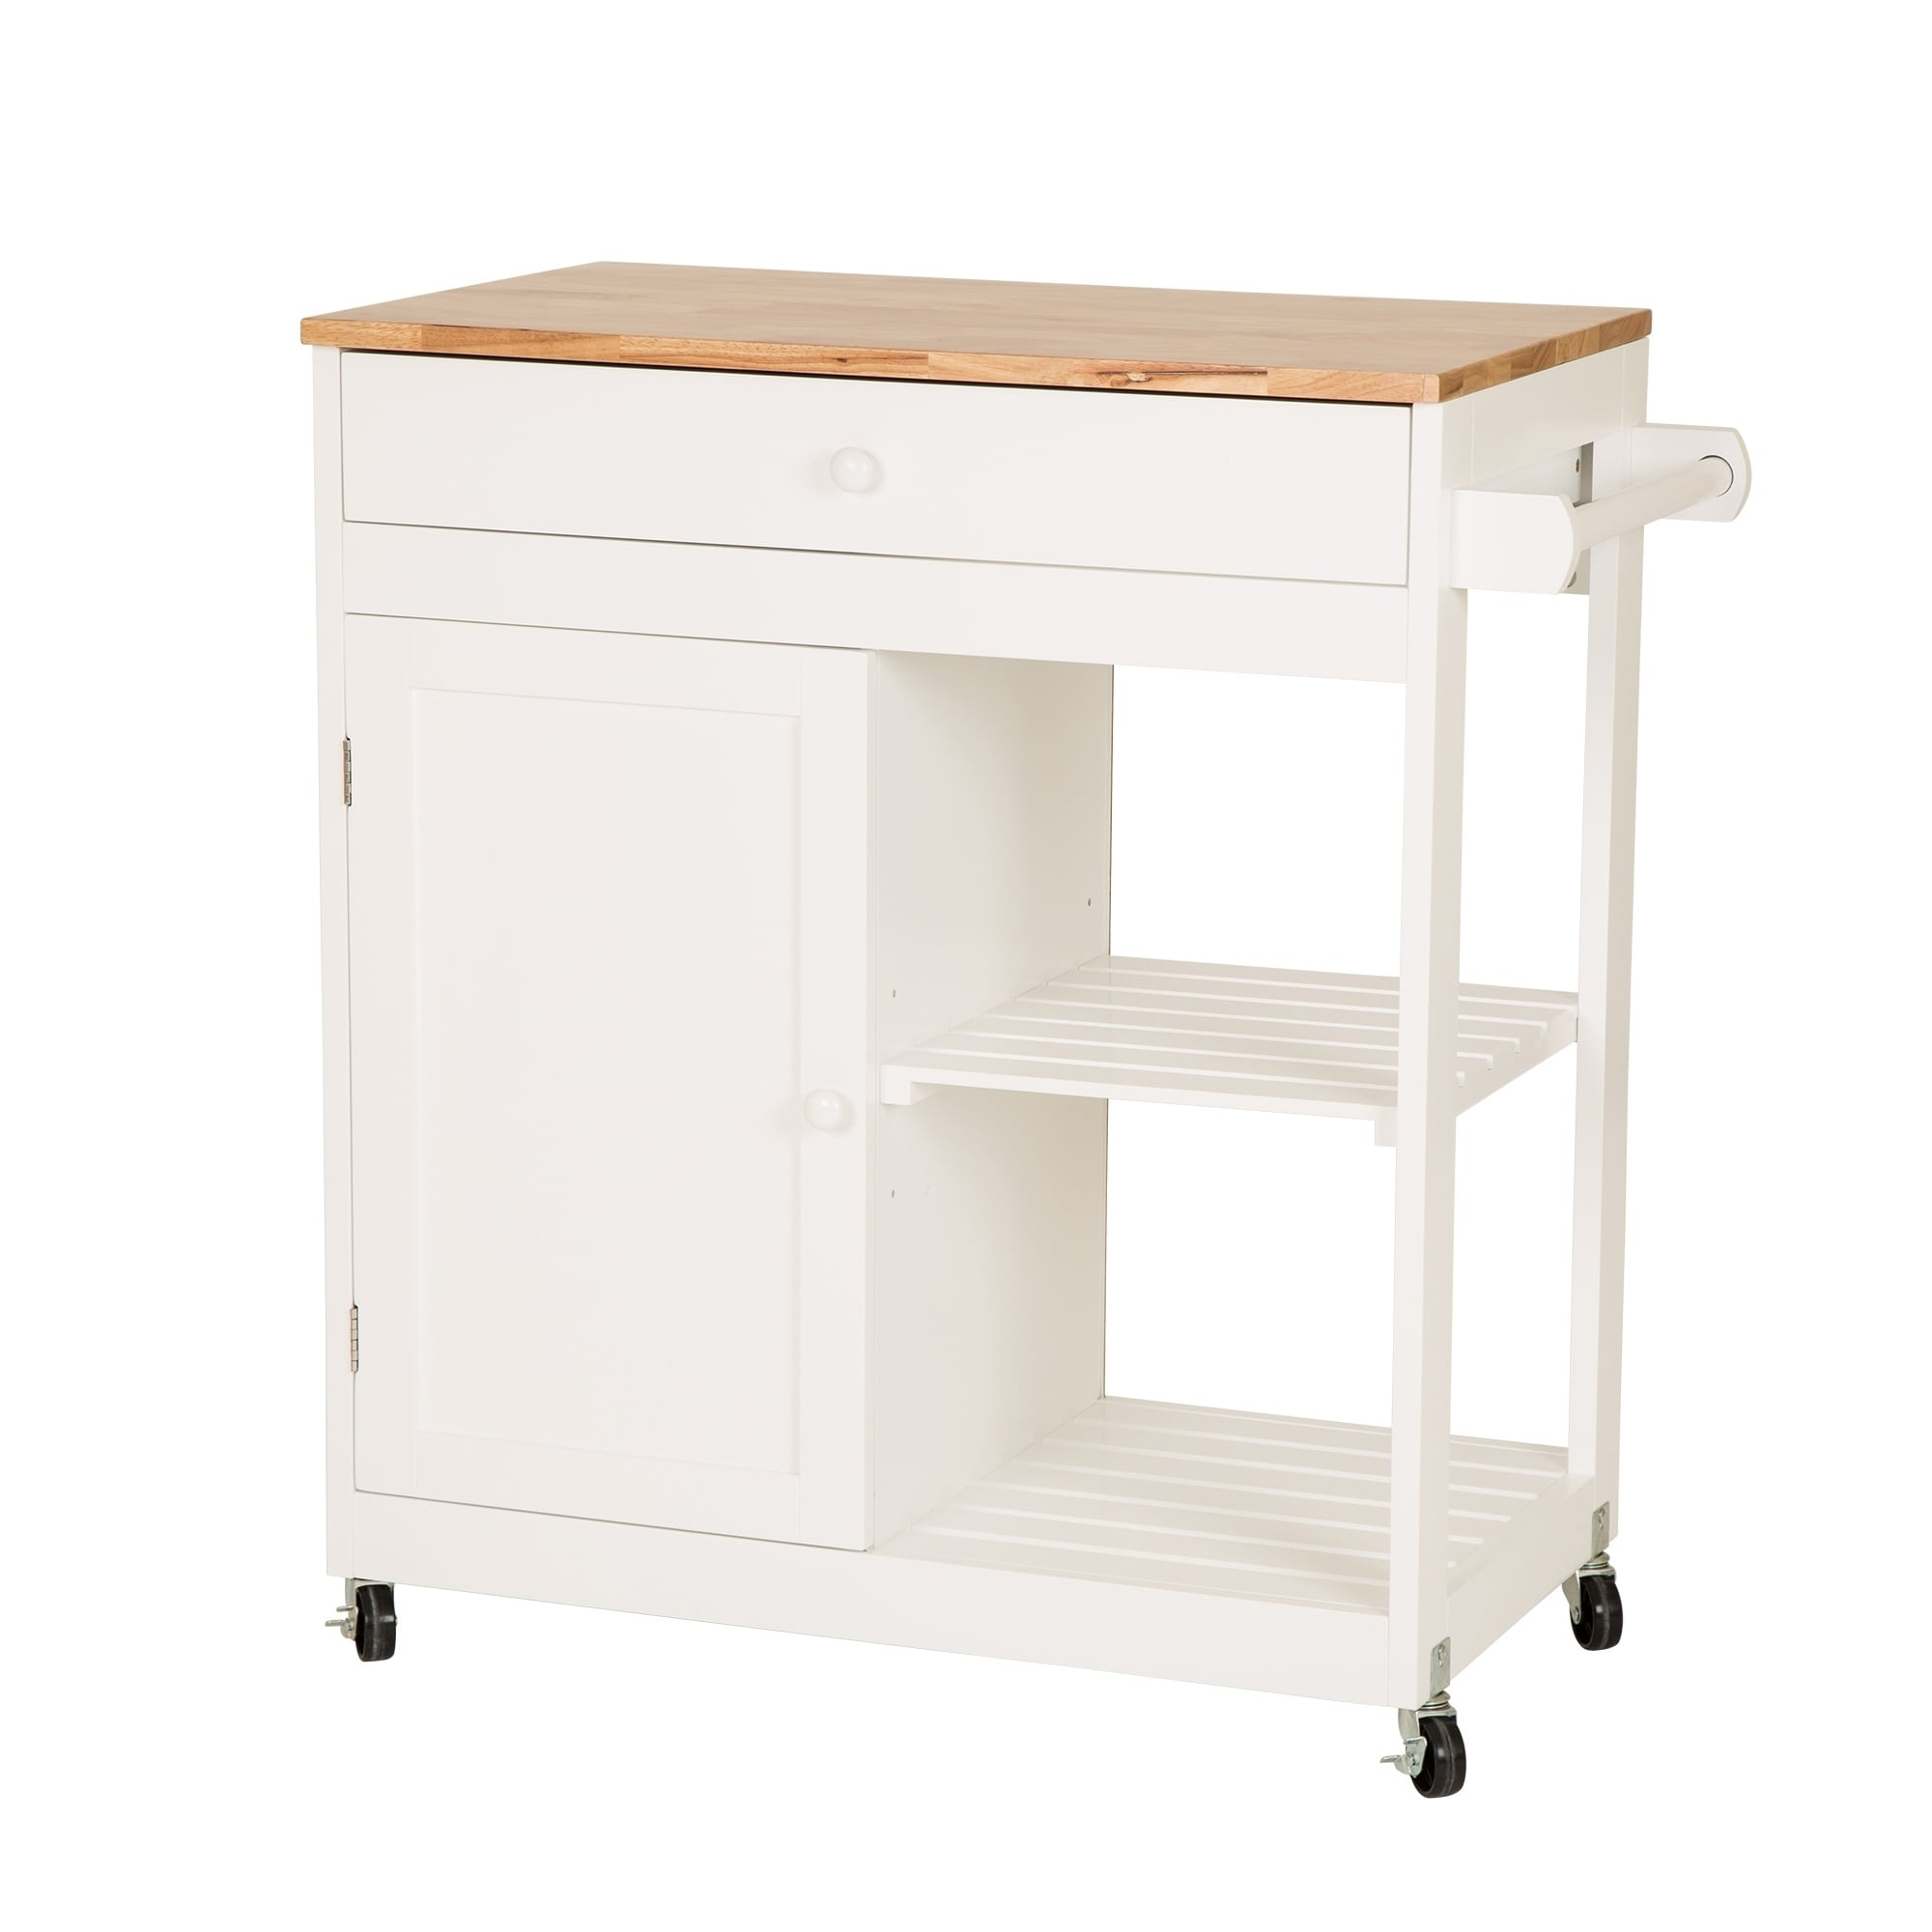 white kitchen island cart waverly curtains shop glitzhome with rubber wooden top on sale free shipping today overstock com 23468088